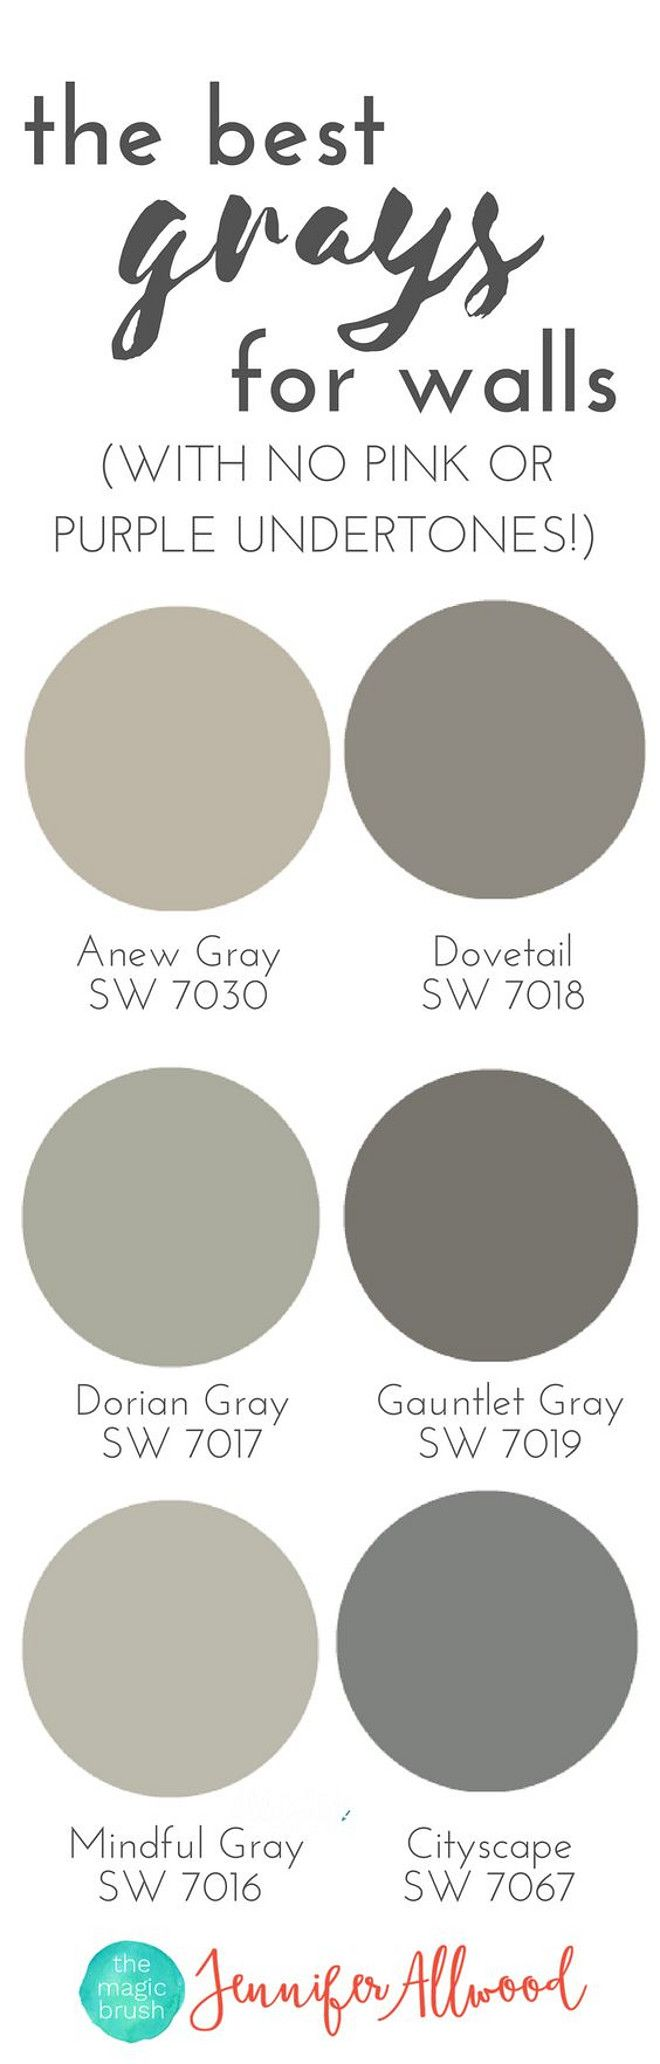 Grays w/o pink or purple